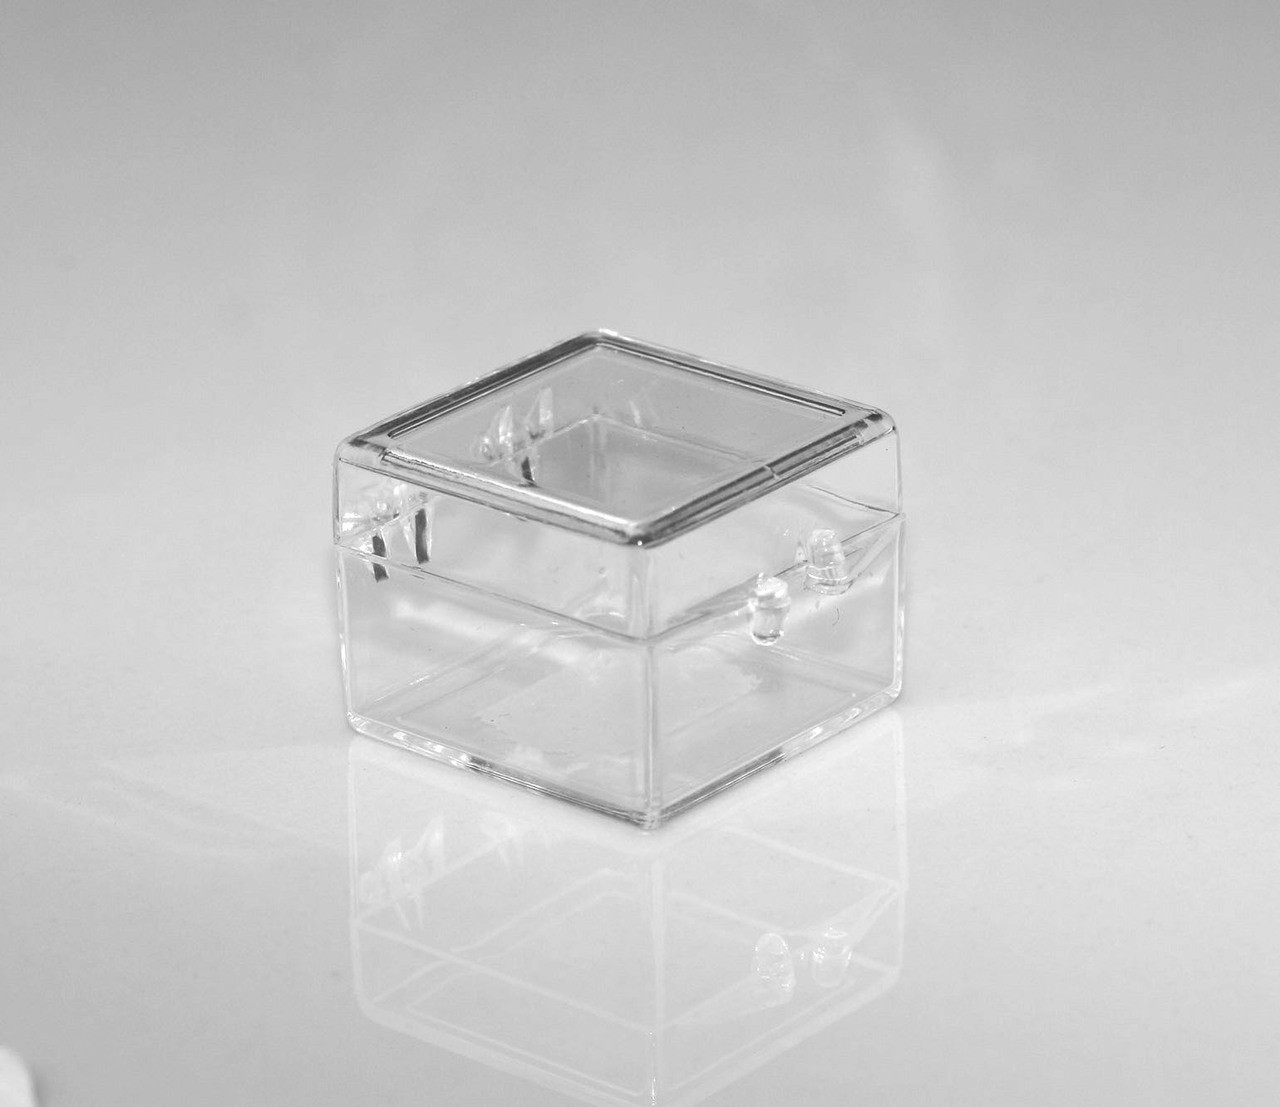 Small Plastic Box With Hinged Lid 112 1 X 1 X 3 4